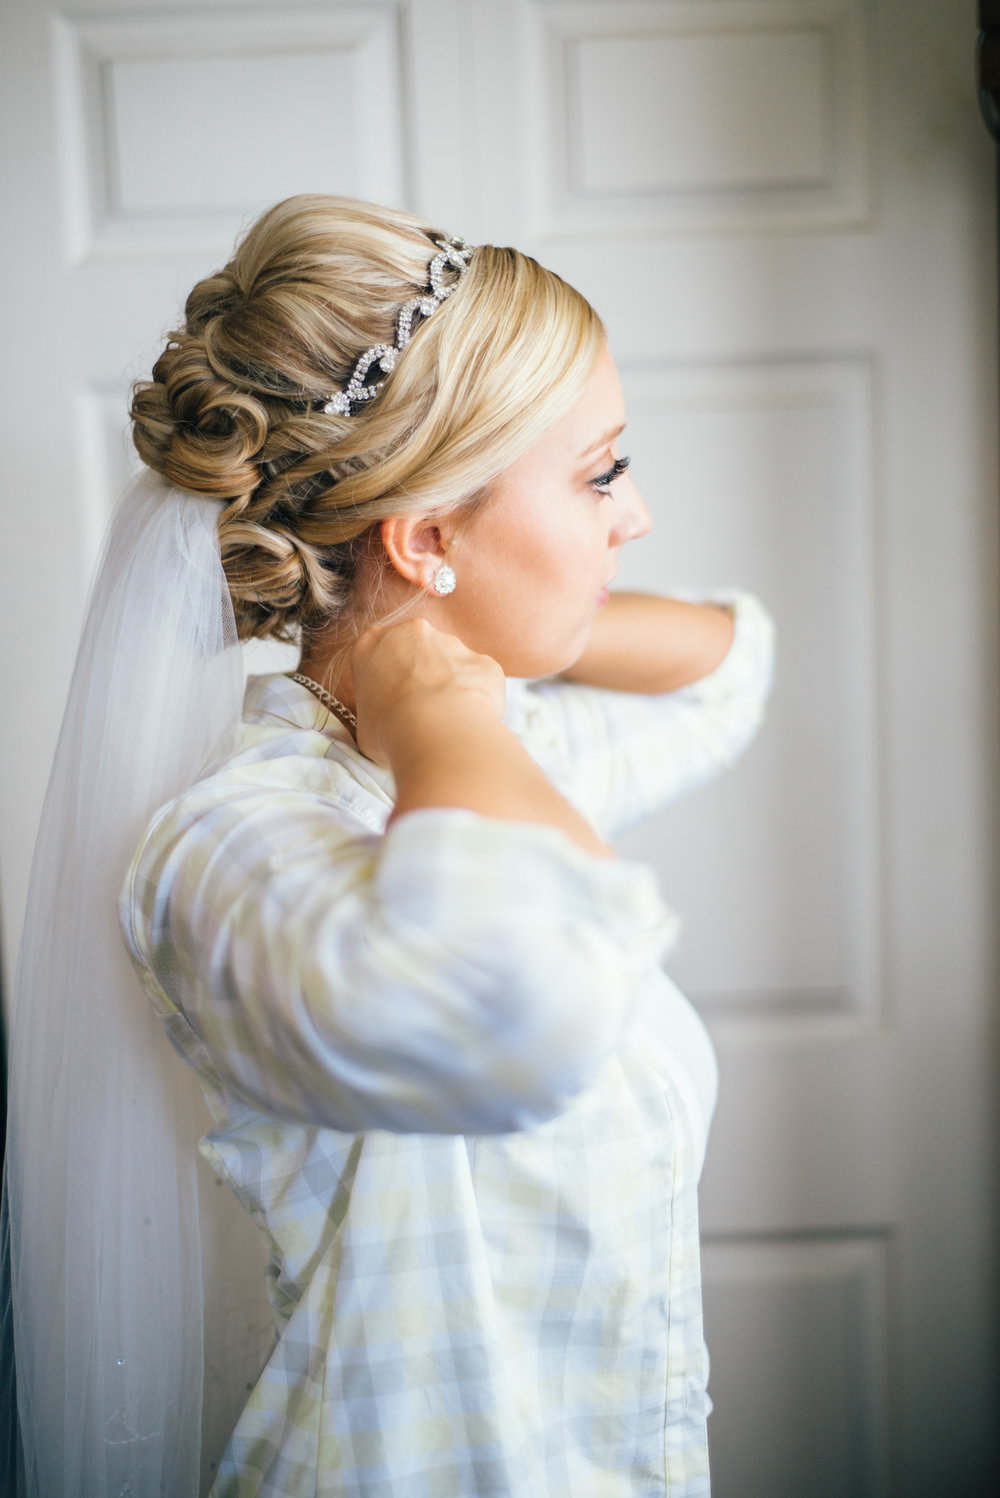 Bride wearing veil clasping necklace before putting on wedding dress